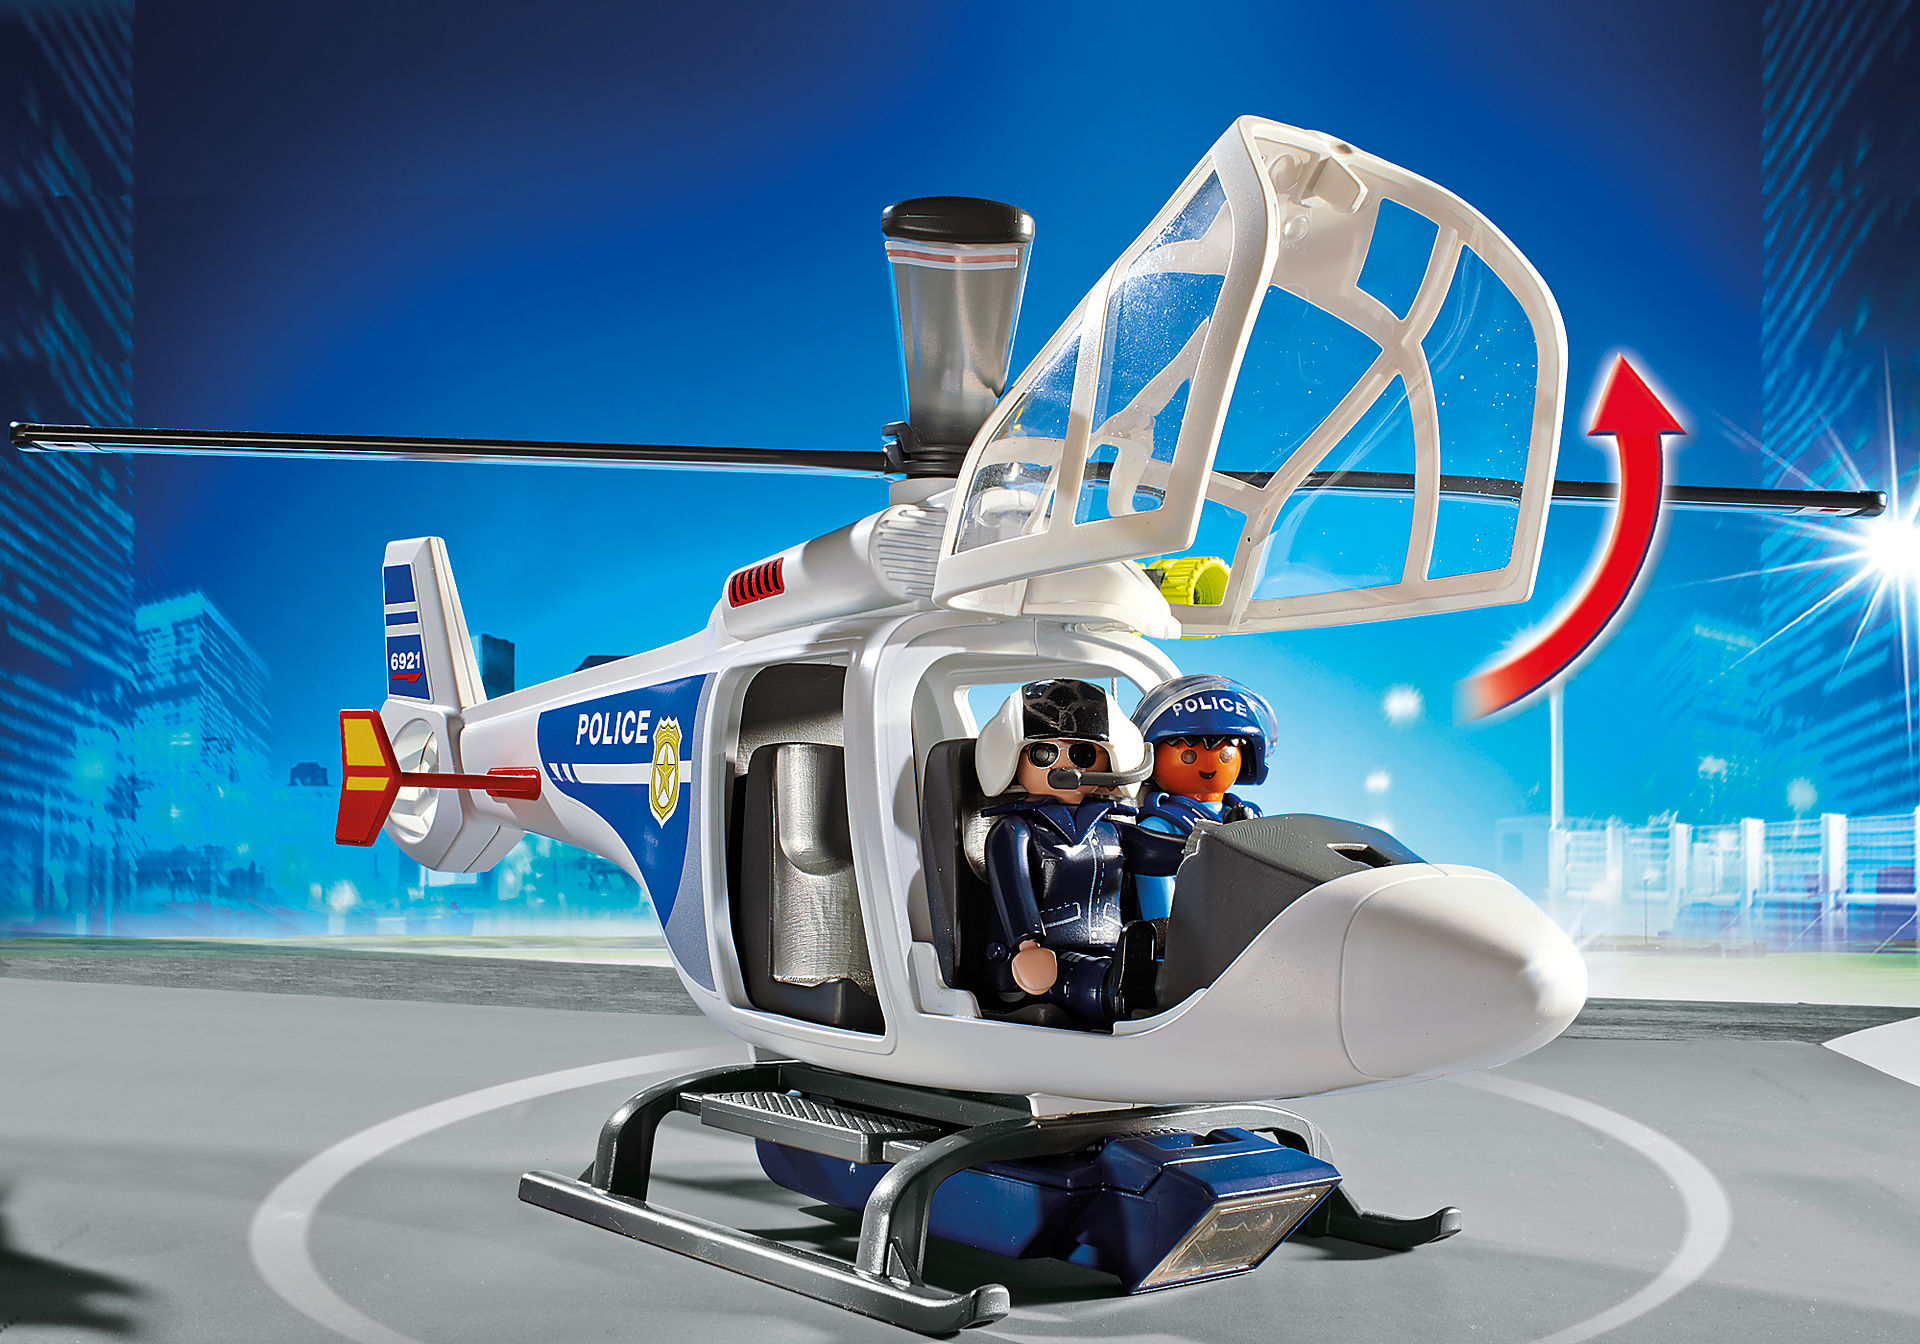 http://media.playmobil.com/i/playmobil/6921_product_extra1/Politiehelikopter met LED-zoeklicht